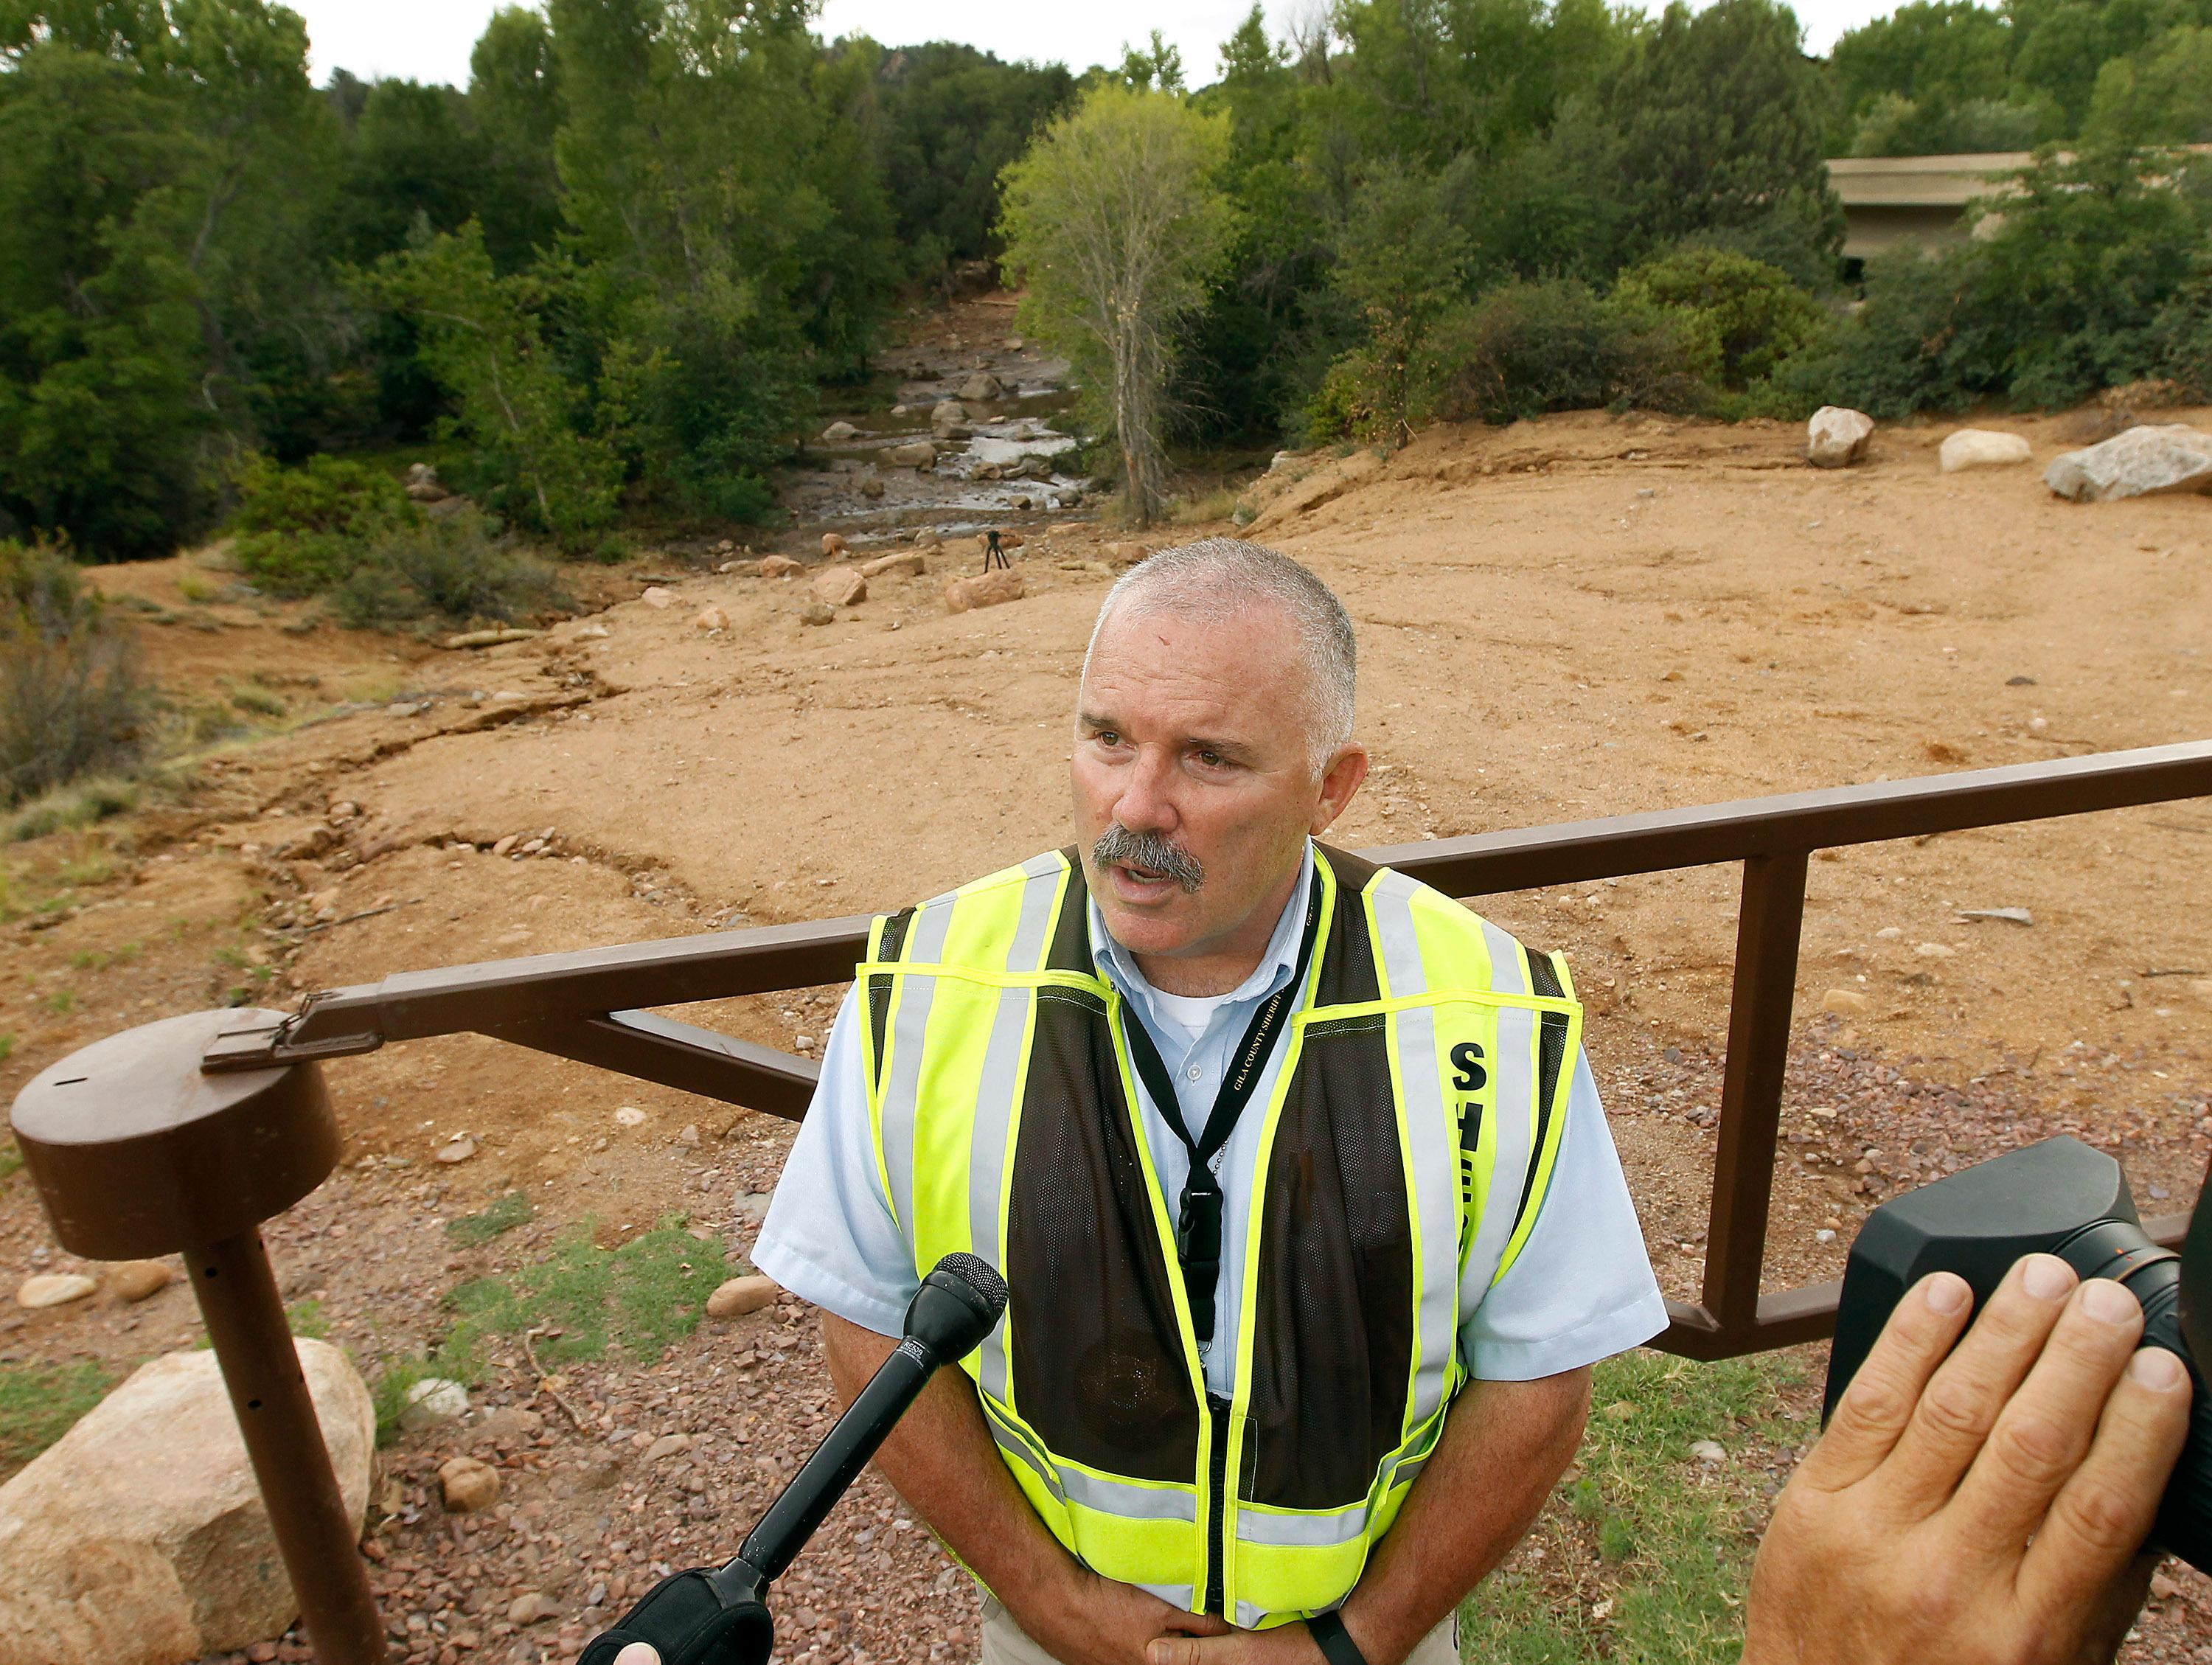 Gila County Sheriff's Office Sgt. David Hornung briefs members of the media during a search and rescue operation for victims of a flash flood along the banks of the East Verde River, Sunday, July 16, 2017, in Payson, Ariz. Search and rescue crews, including 40 people on foot and others in a helicopter, have recovered bodies of children and adults, some as far as two miles down the river after Saturday's flash flooding poured over a popular swimming area inside the Tonto National Forest in central Arizona. (AP Photo/Ralph Freso)